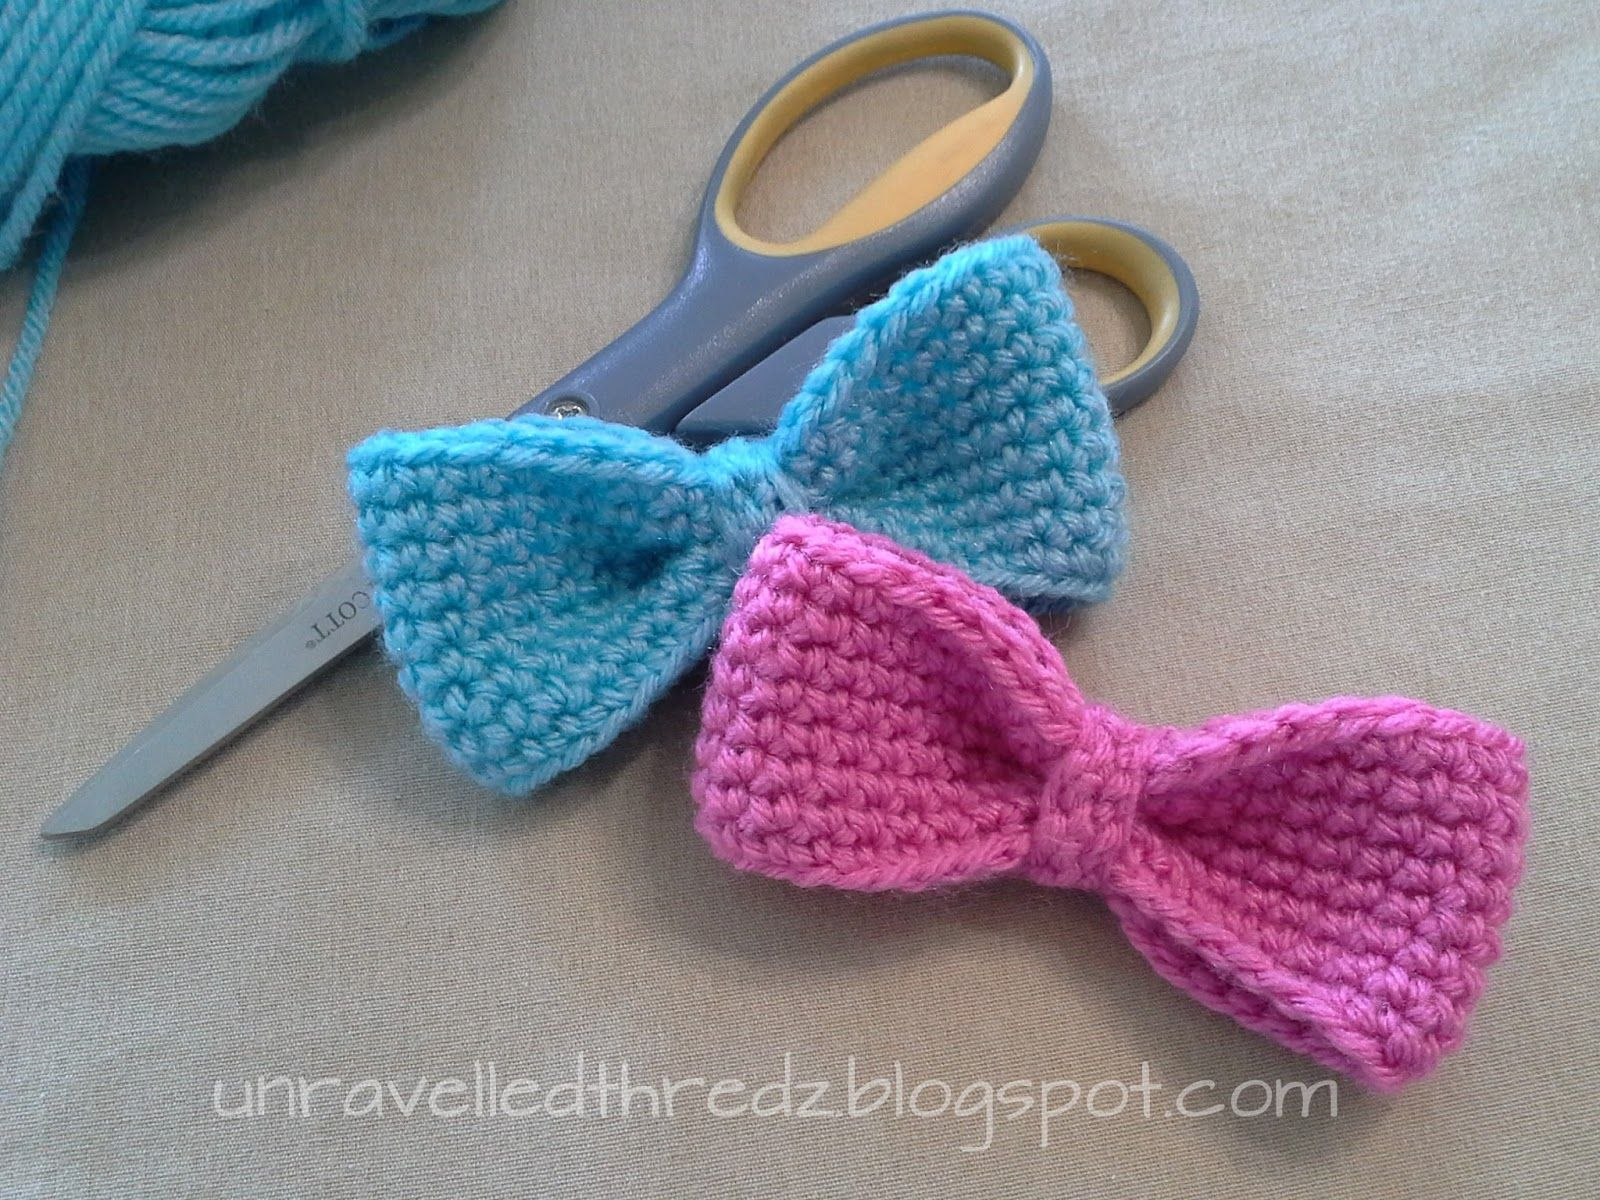 Tutorial/pattern for simple crocheted bows | Lacos de cabelo ...